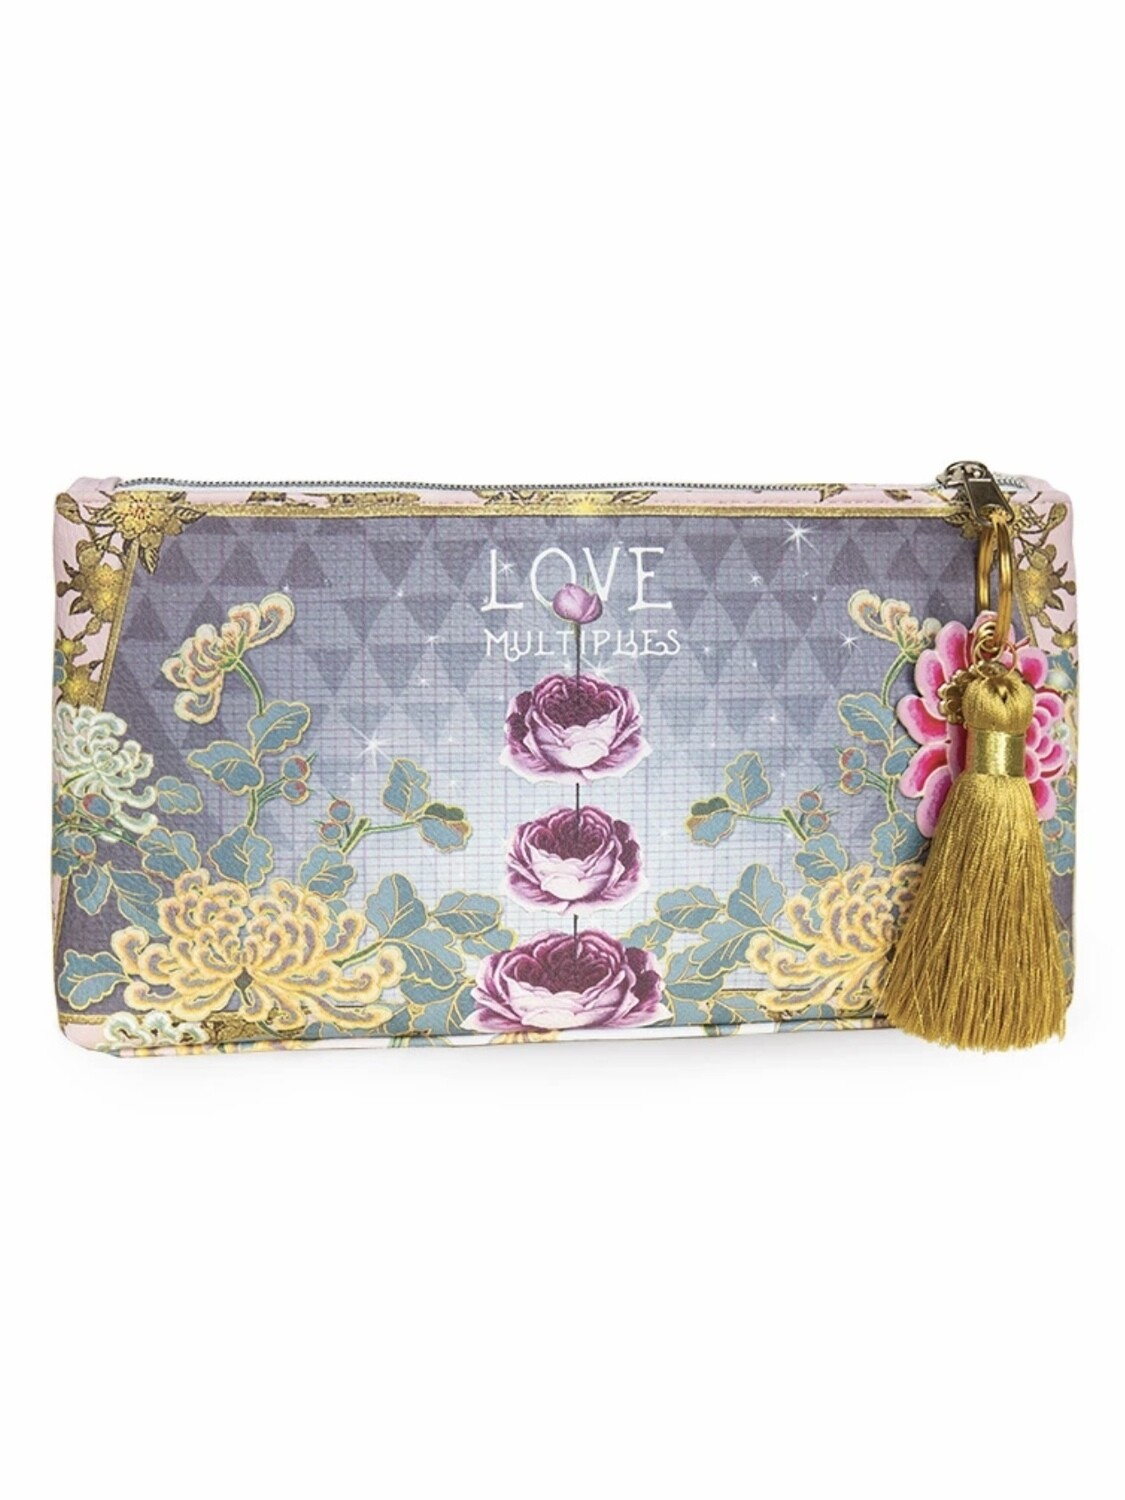 Love Multiplies Small Pouch - PAB26